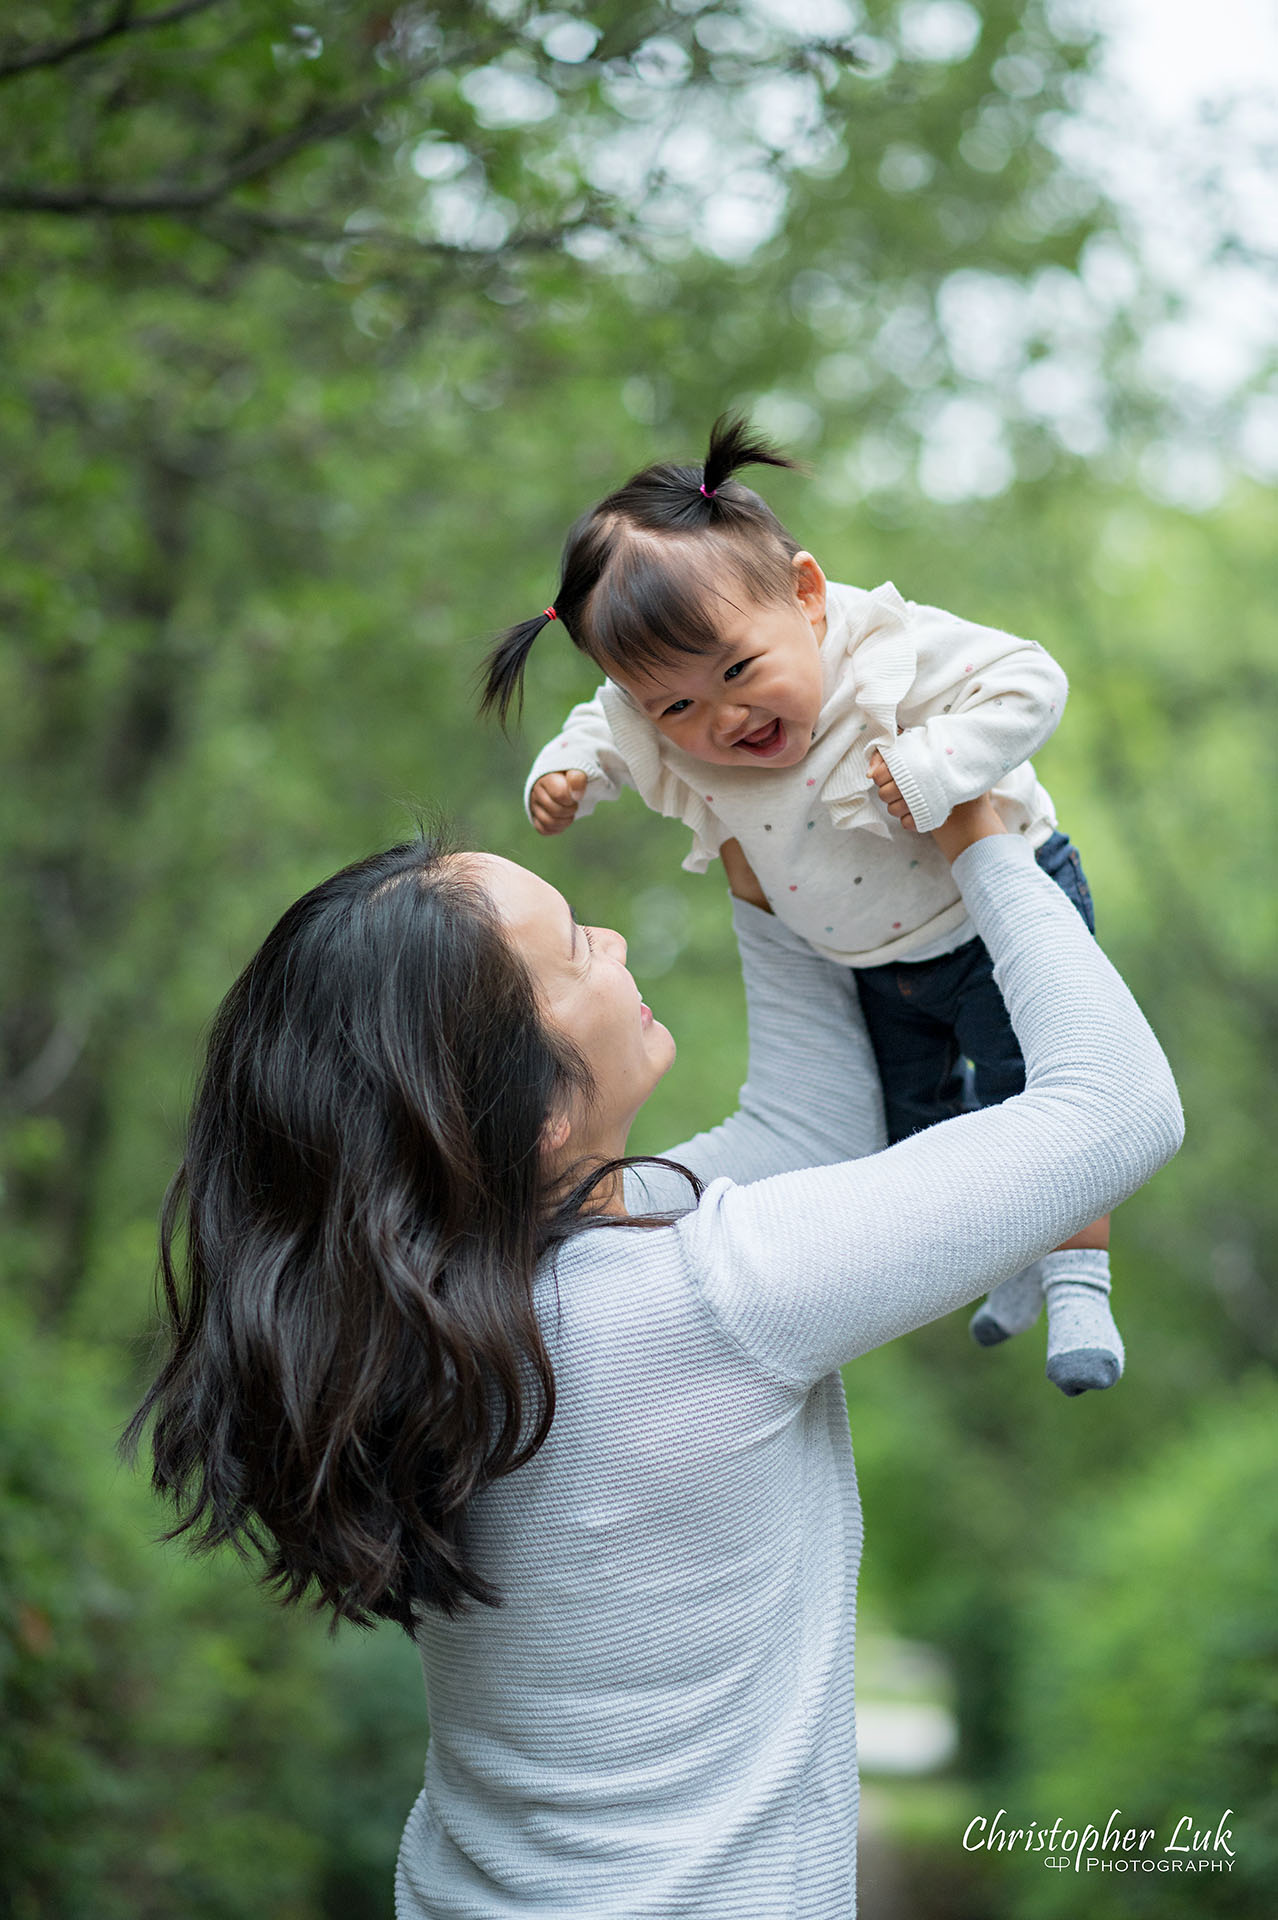 Christopher Luk Toronto Markham Family Wedding Photographer Baby Girl Natural Candid Photojournalistic Mom Mother Motherhood Daughter Lift Up in Air Kiss Fun Vertical Portrait Smiling Laughing